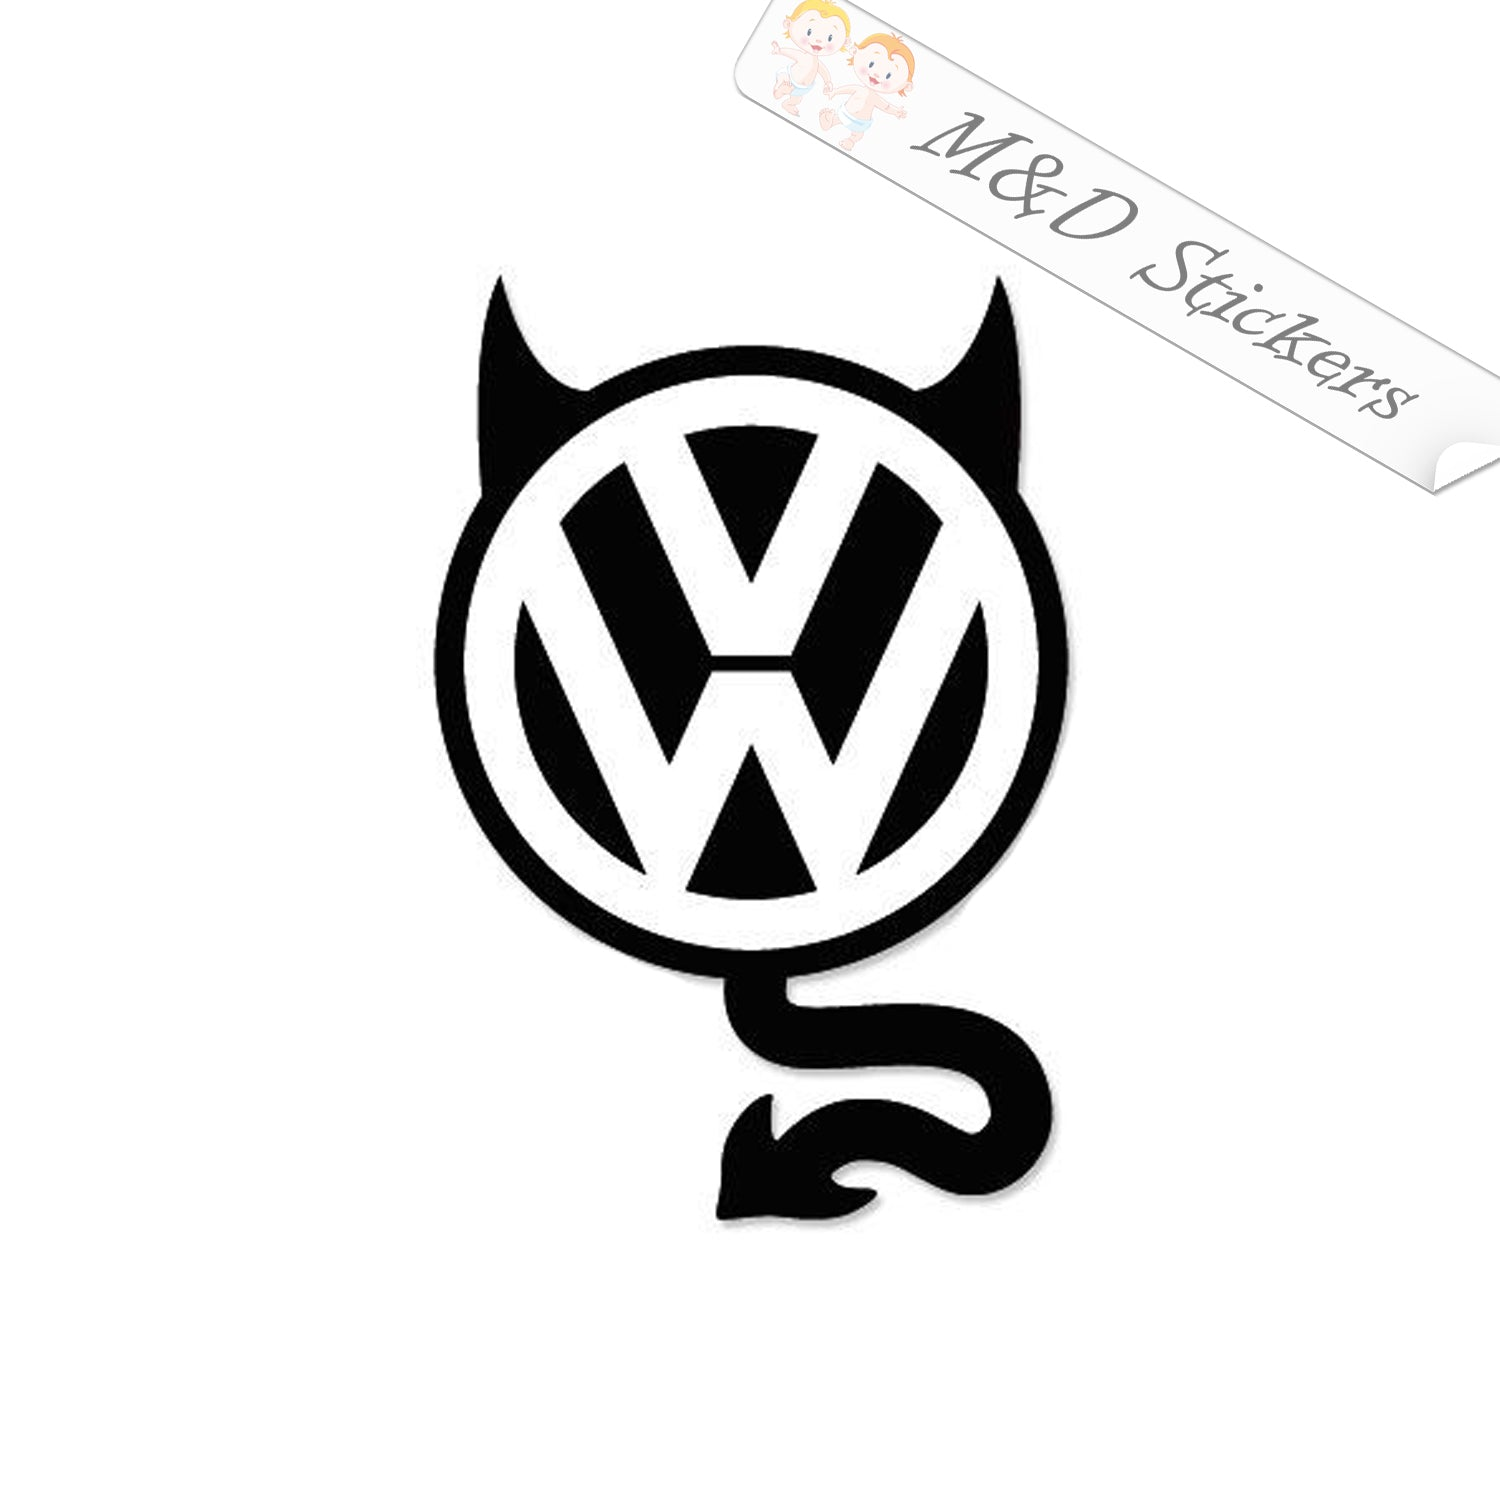 2x volkswagen devil logo vinyl decal sticker different colors size f m d stickers 2x volkswagen devil logo vinyl decal sticker different colors size for cars bikes windows